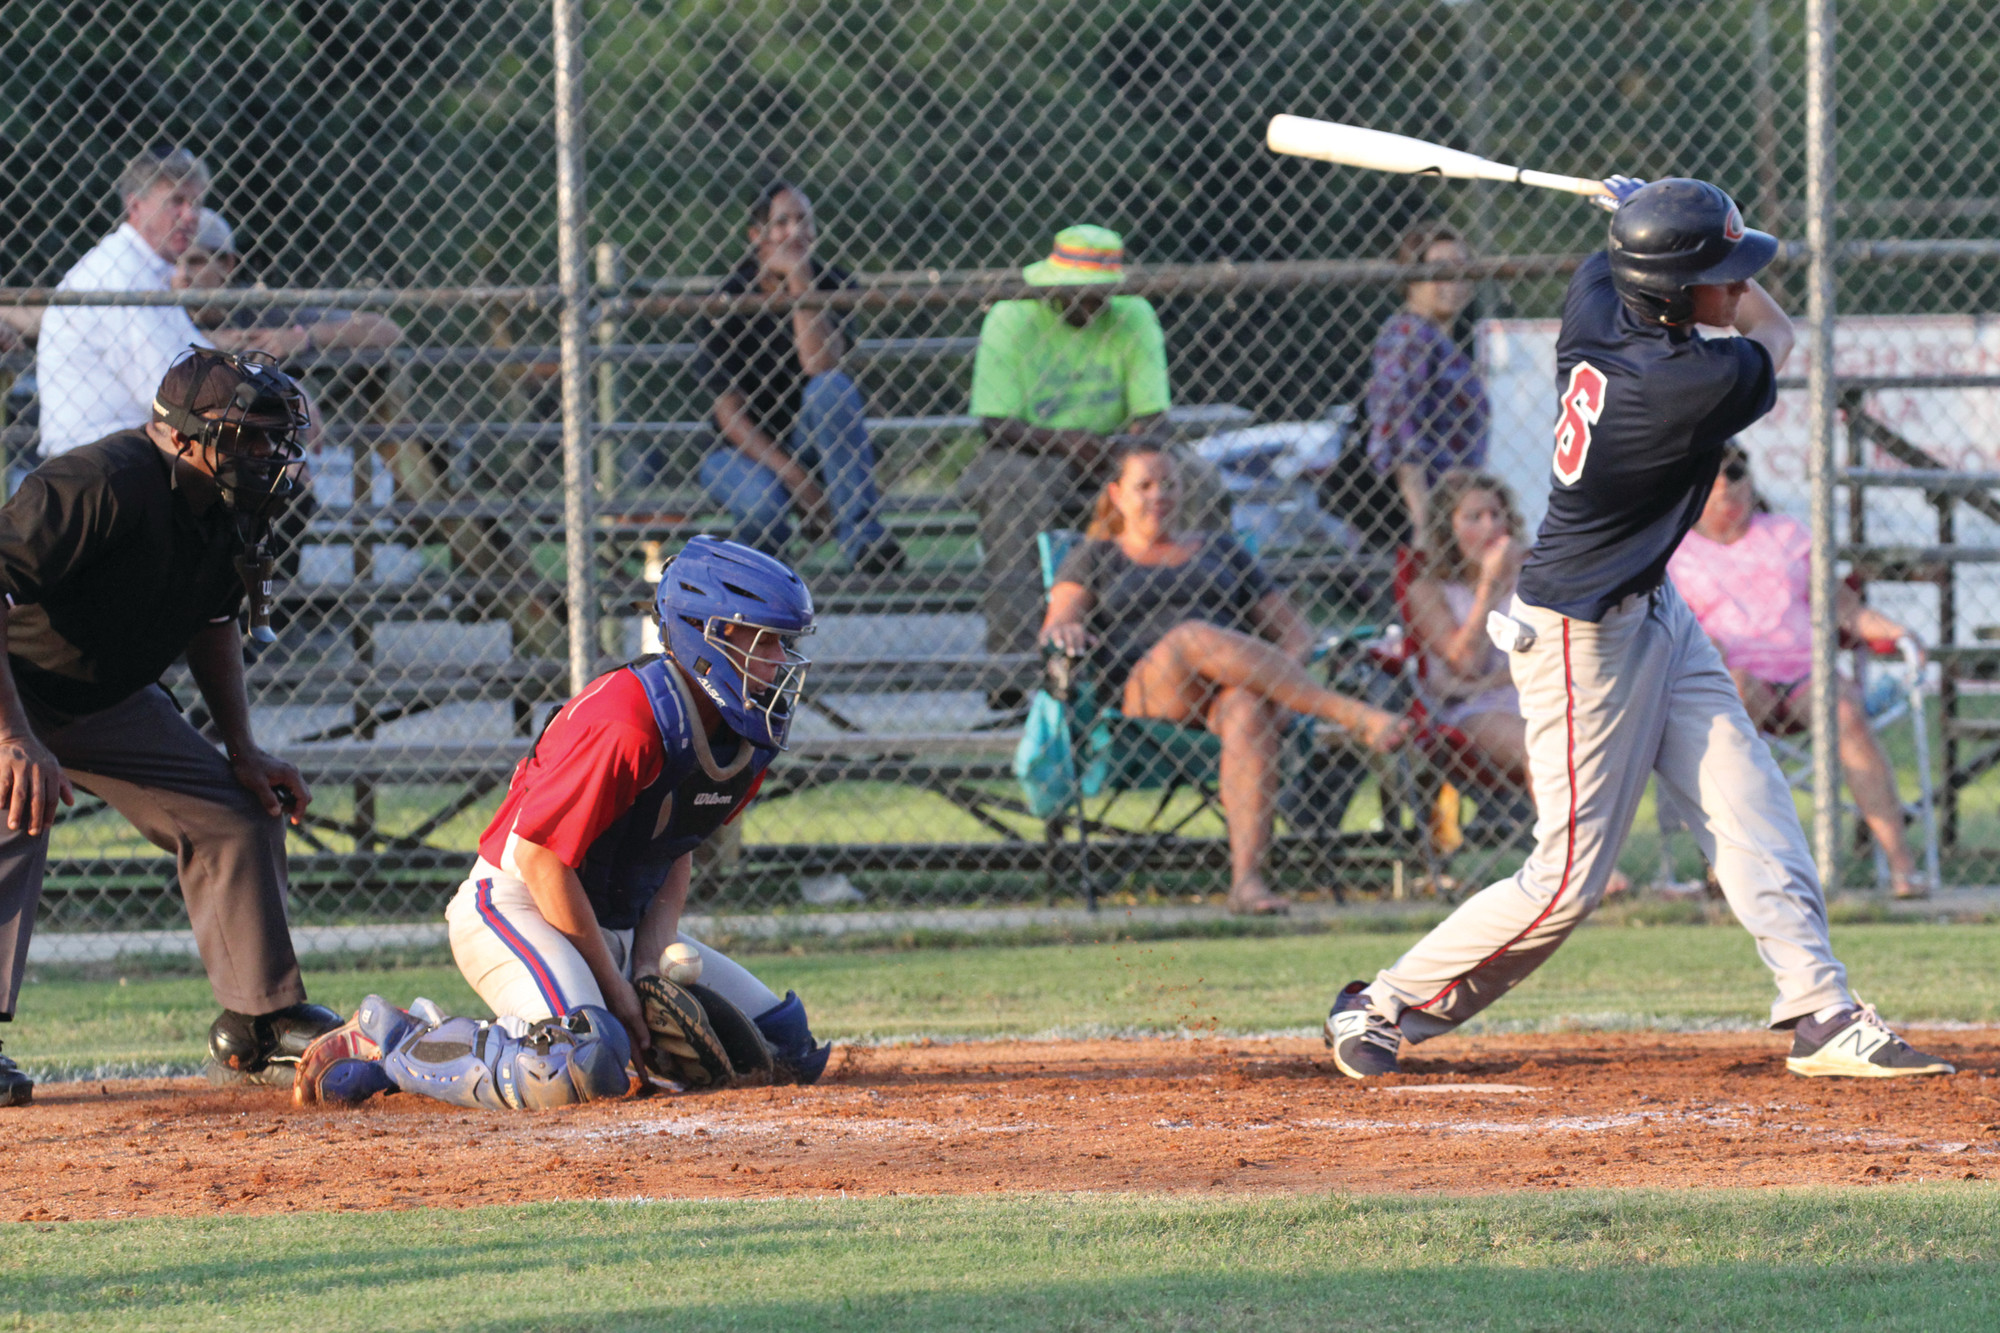 Photo provided by Natalie Bryant DuComSumter Junior P-15's catcher Sebastian DuCom, shown blocking a pitch, and his teammates open the state playoffs today at Riley Park at 7 p.m. against Marlboro.